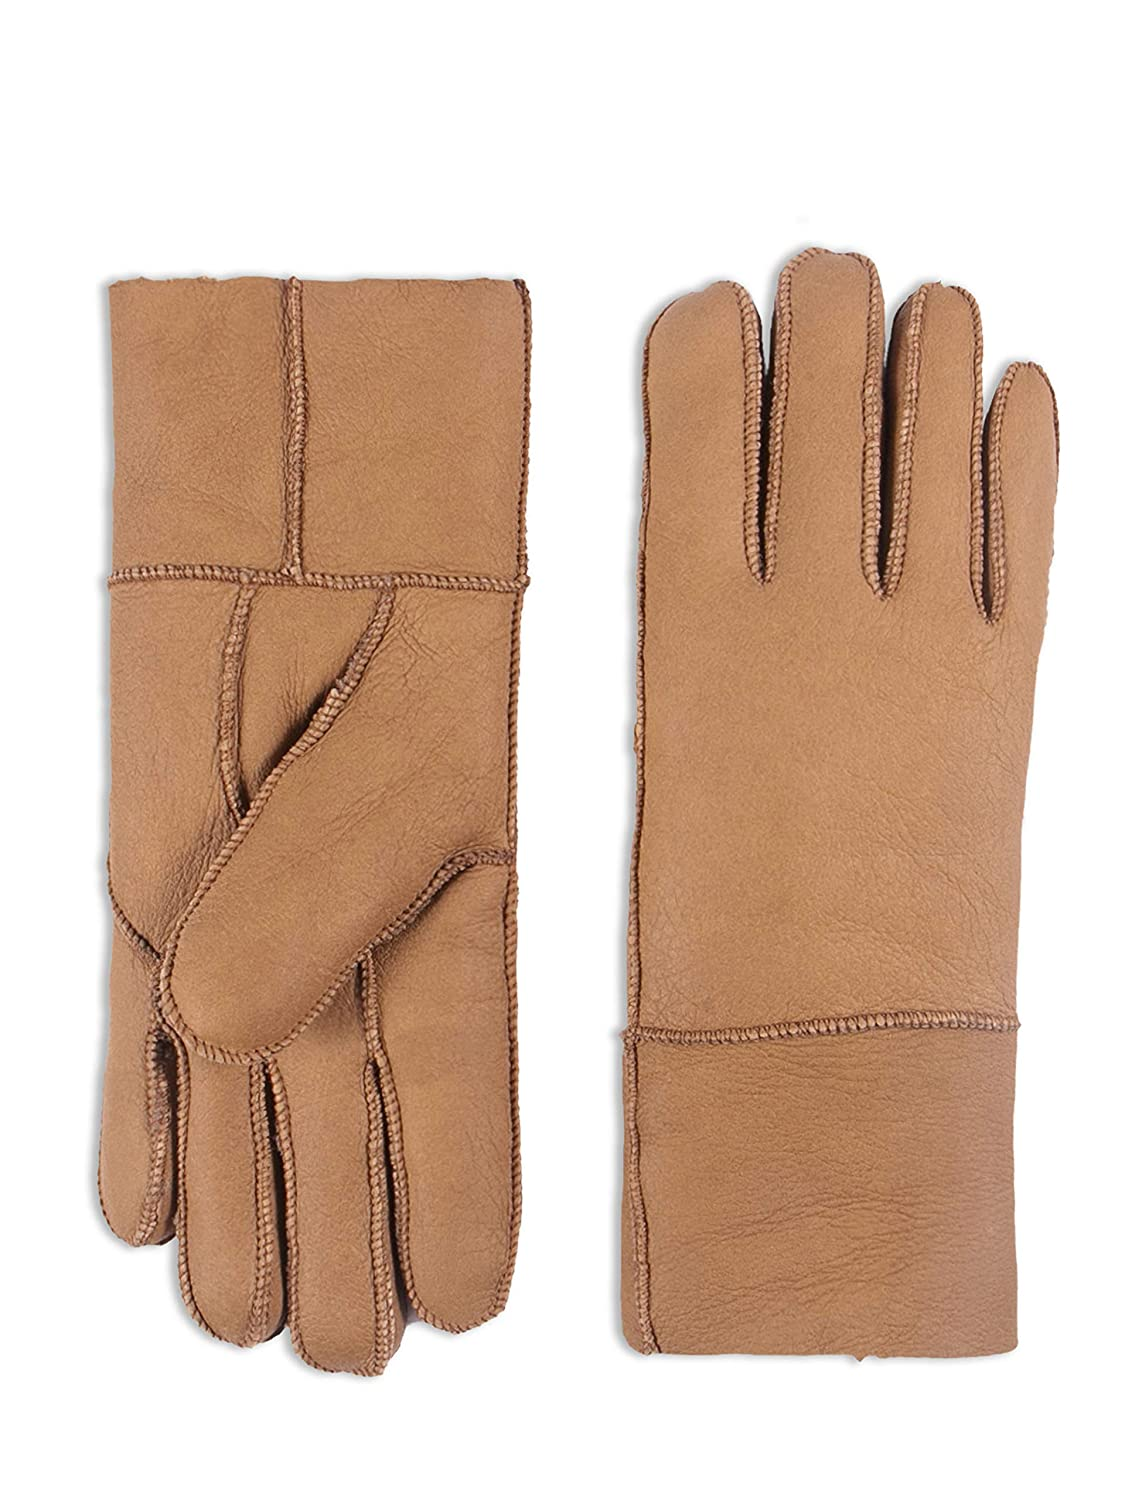 YISEVEN Women's Rugged Sheepskin Shearling Leather Gloves Charm Leather Fashion Company